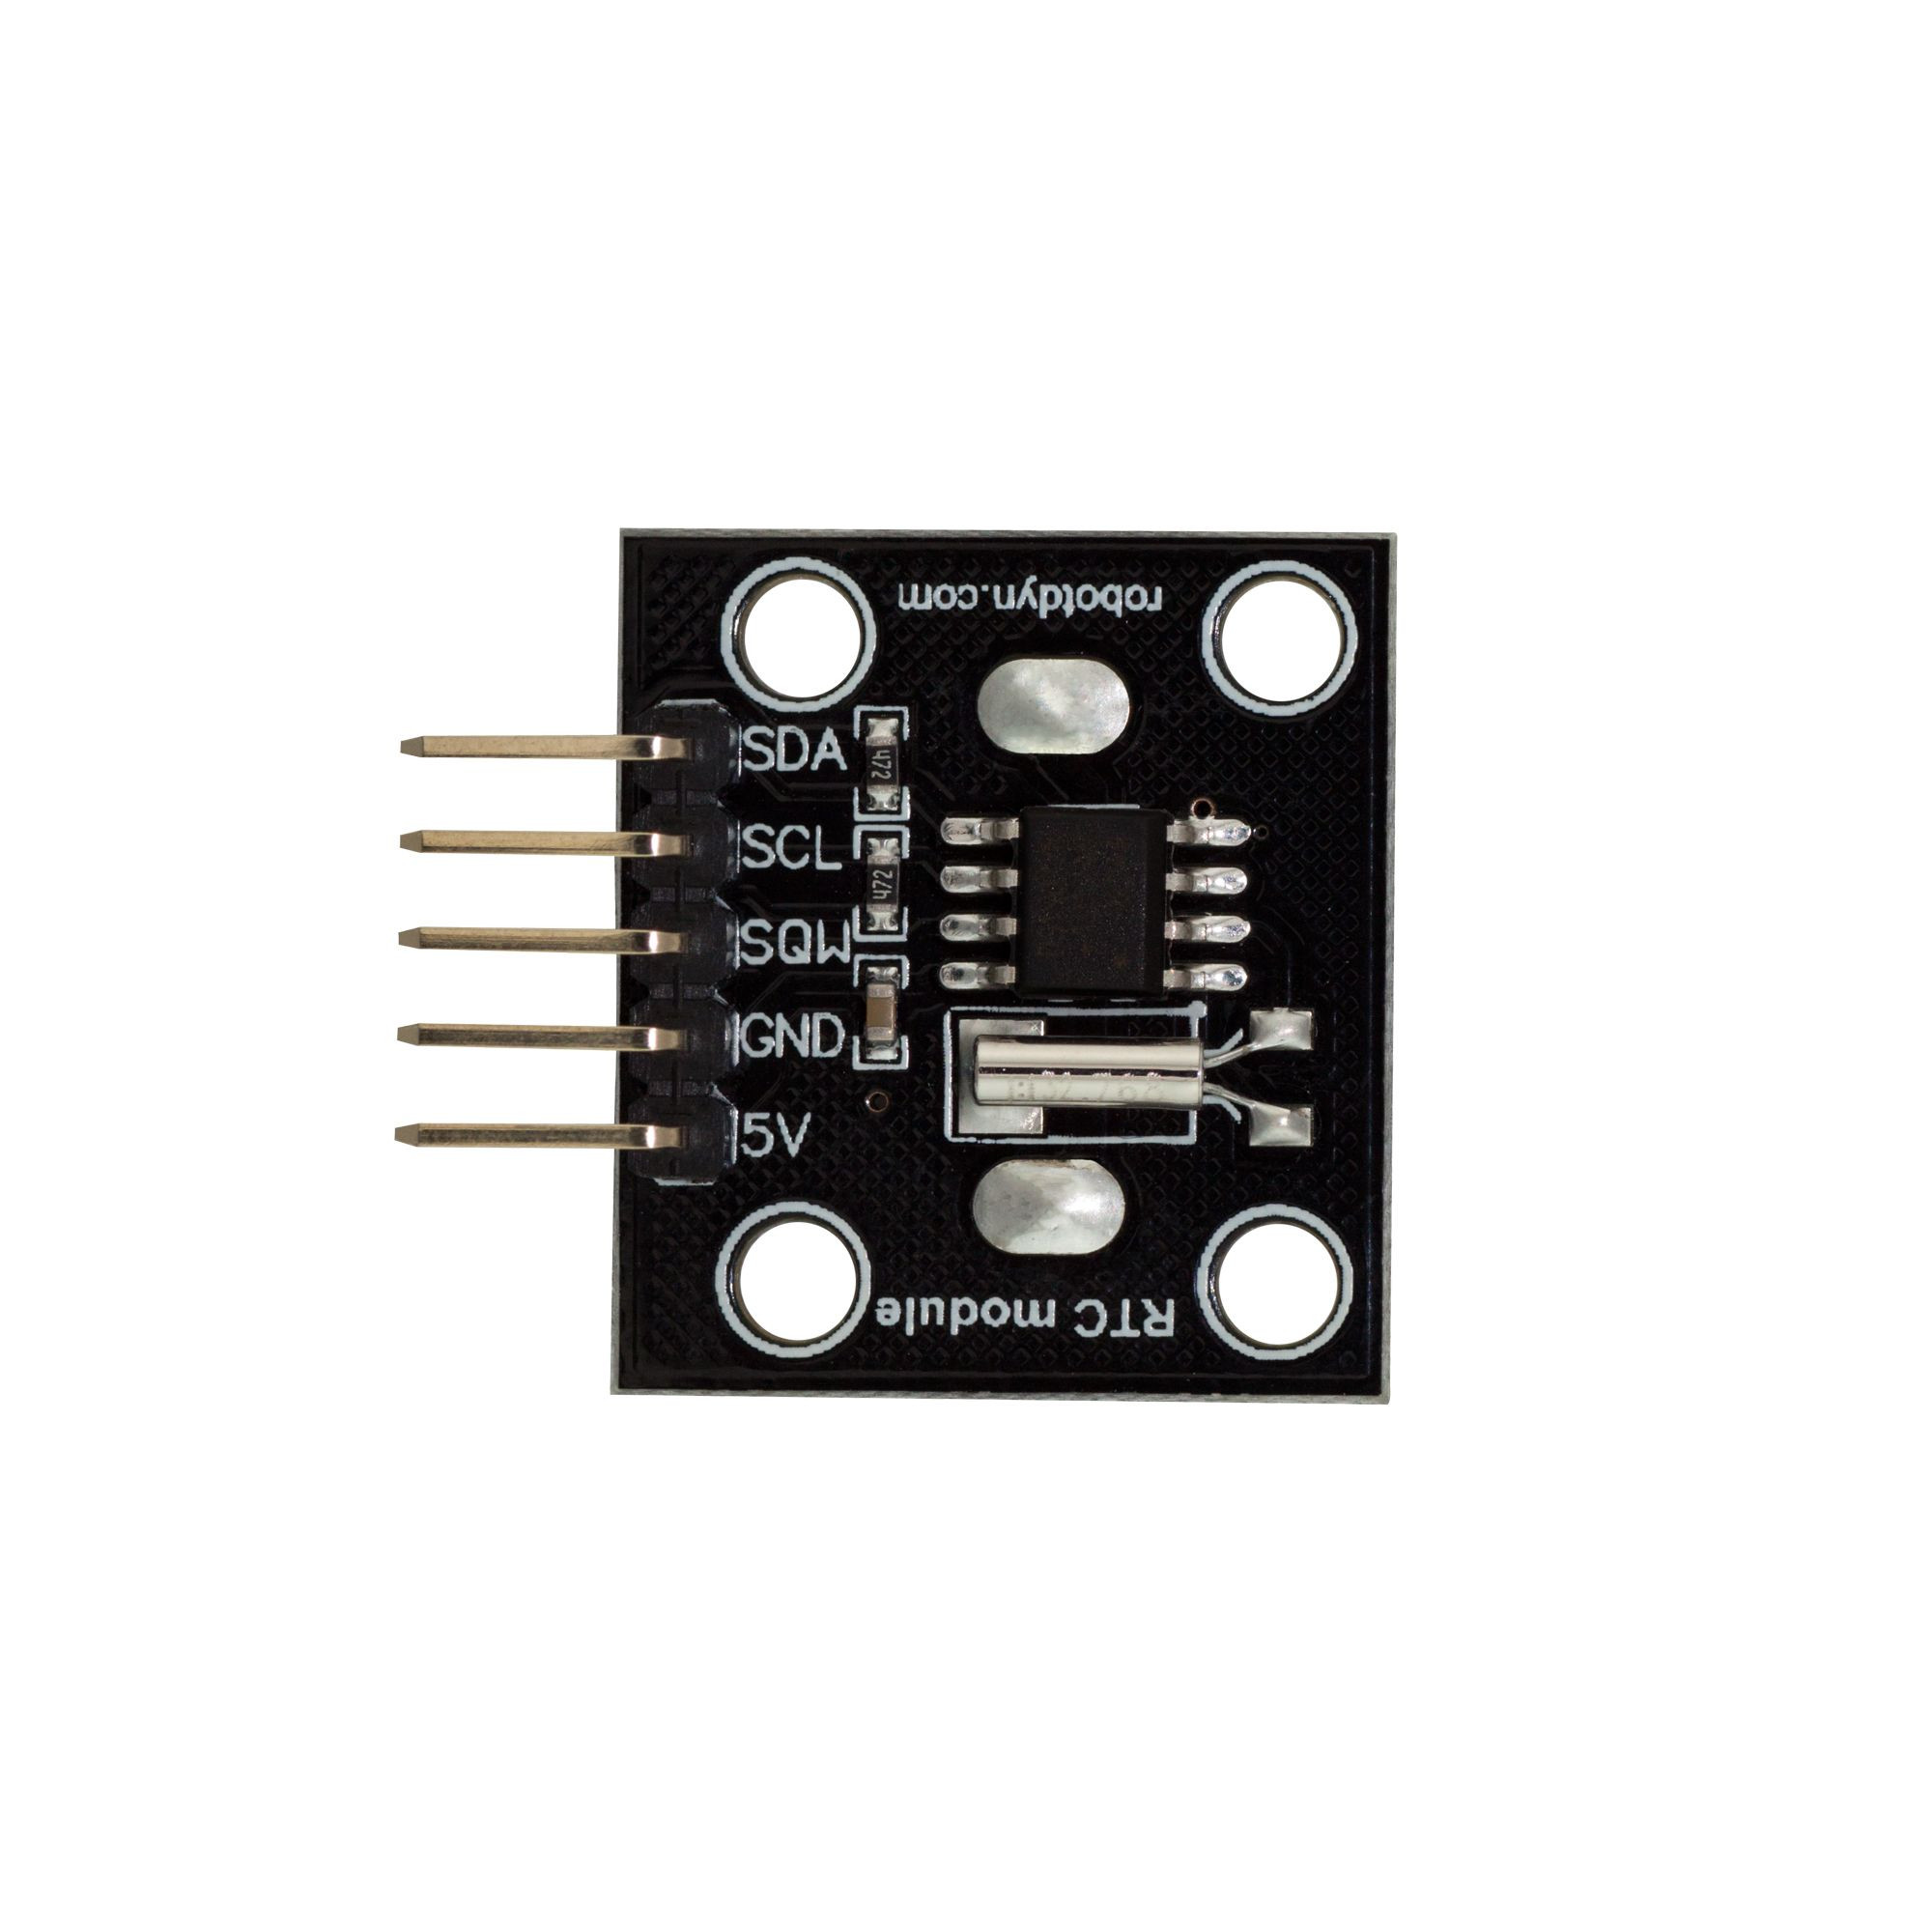 RobotDyn® RTC Real Time Clock DS1307 Module Board With I2C Bus Interface For Arduino